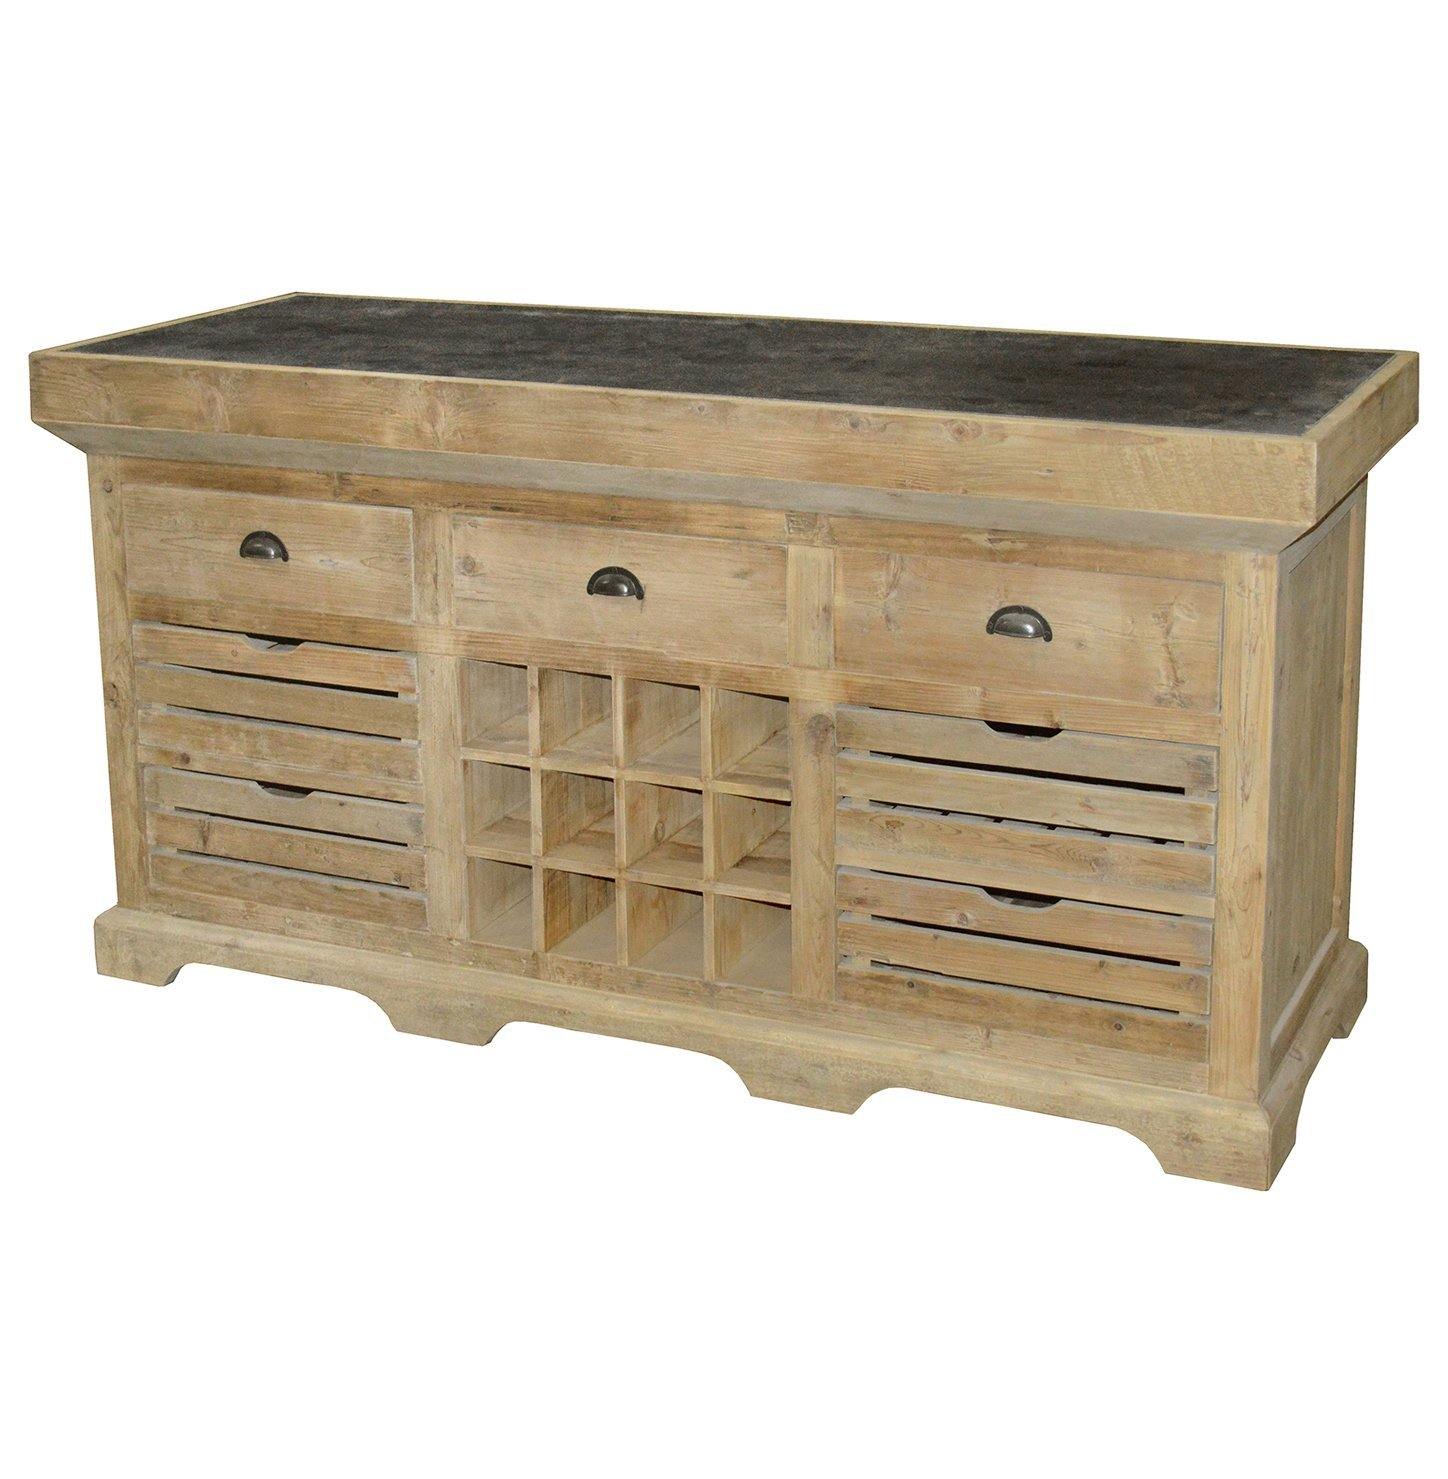 Cheap French Country Kitchen Island Find French Country Kitchen Island Deals On Line At Alibaba Com